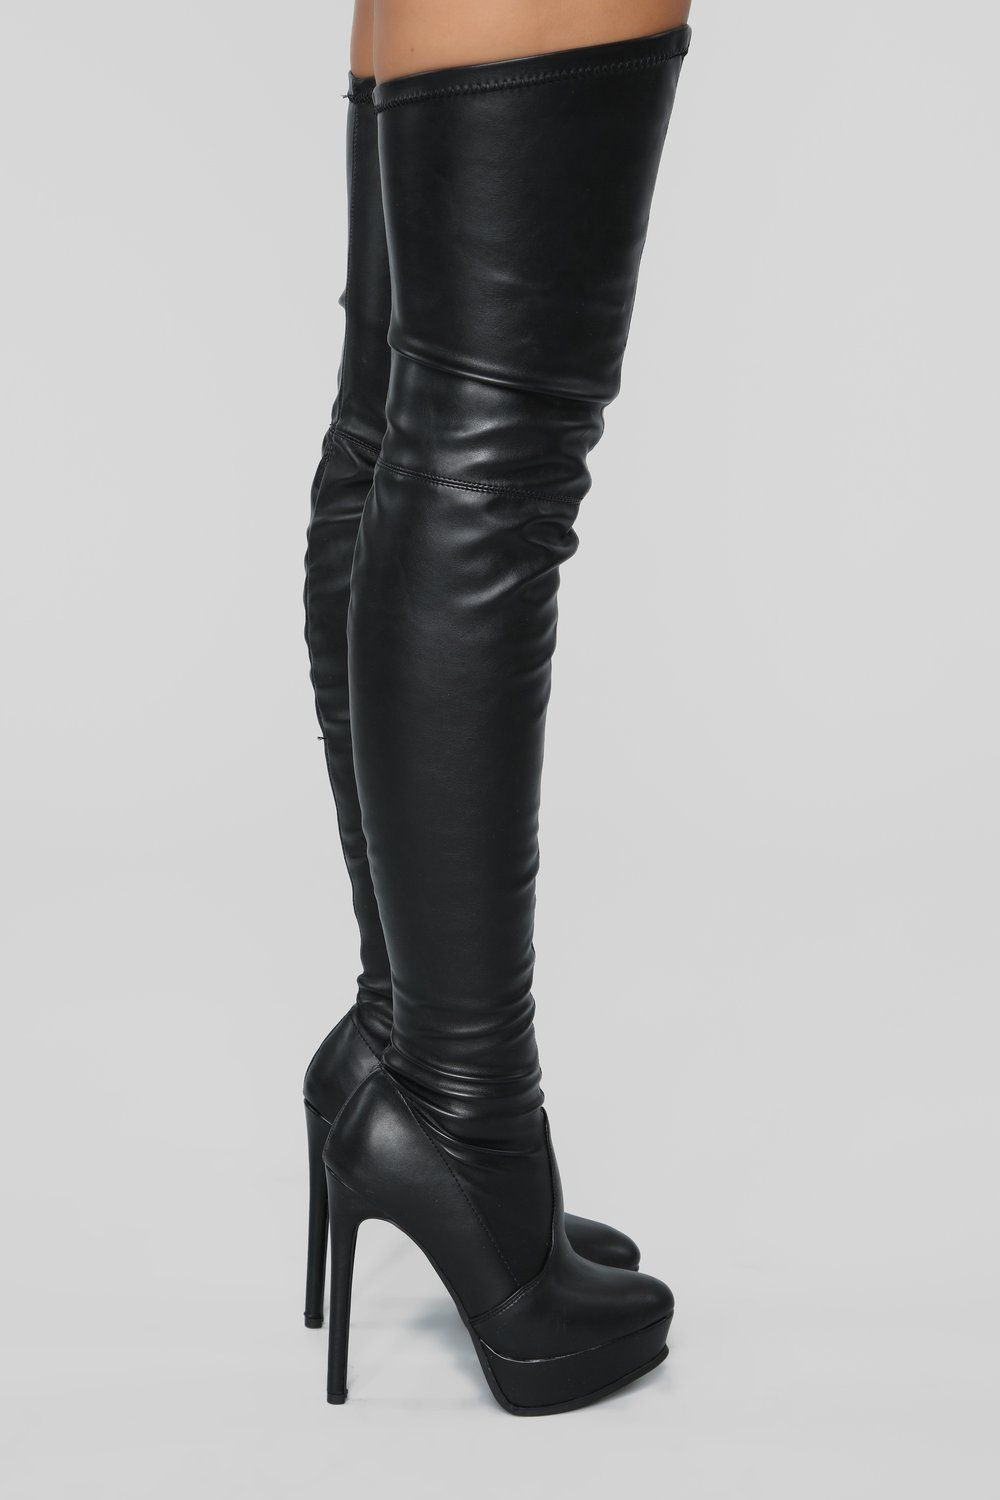 ec971301019 Envious Much Faux Leather Heeled Boot - Black in 2019 | shoes ...